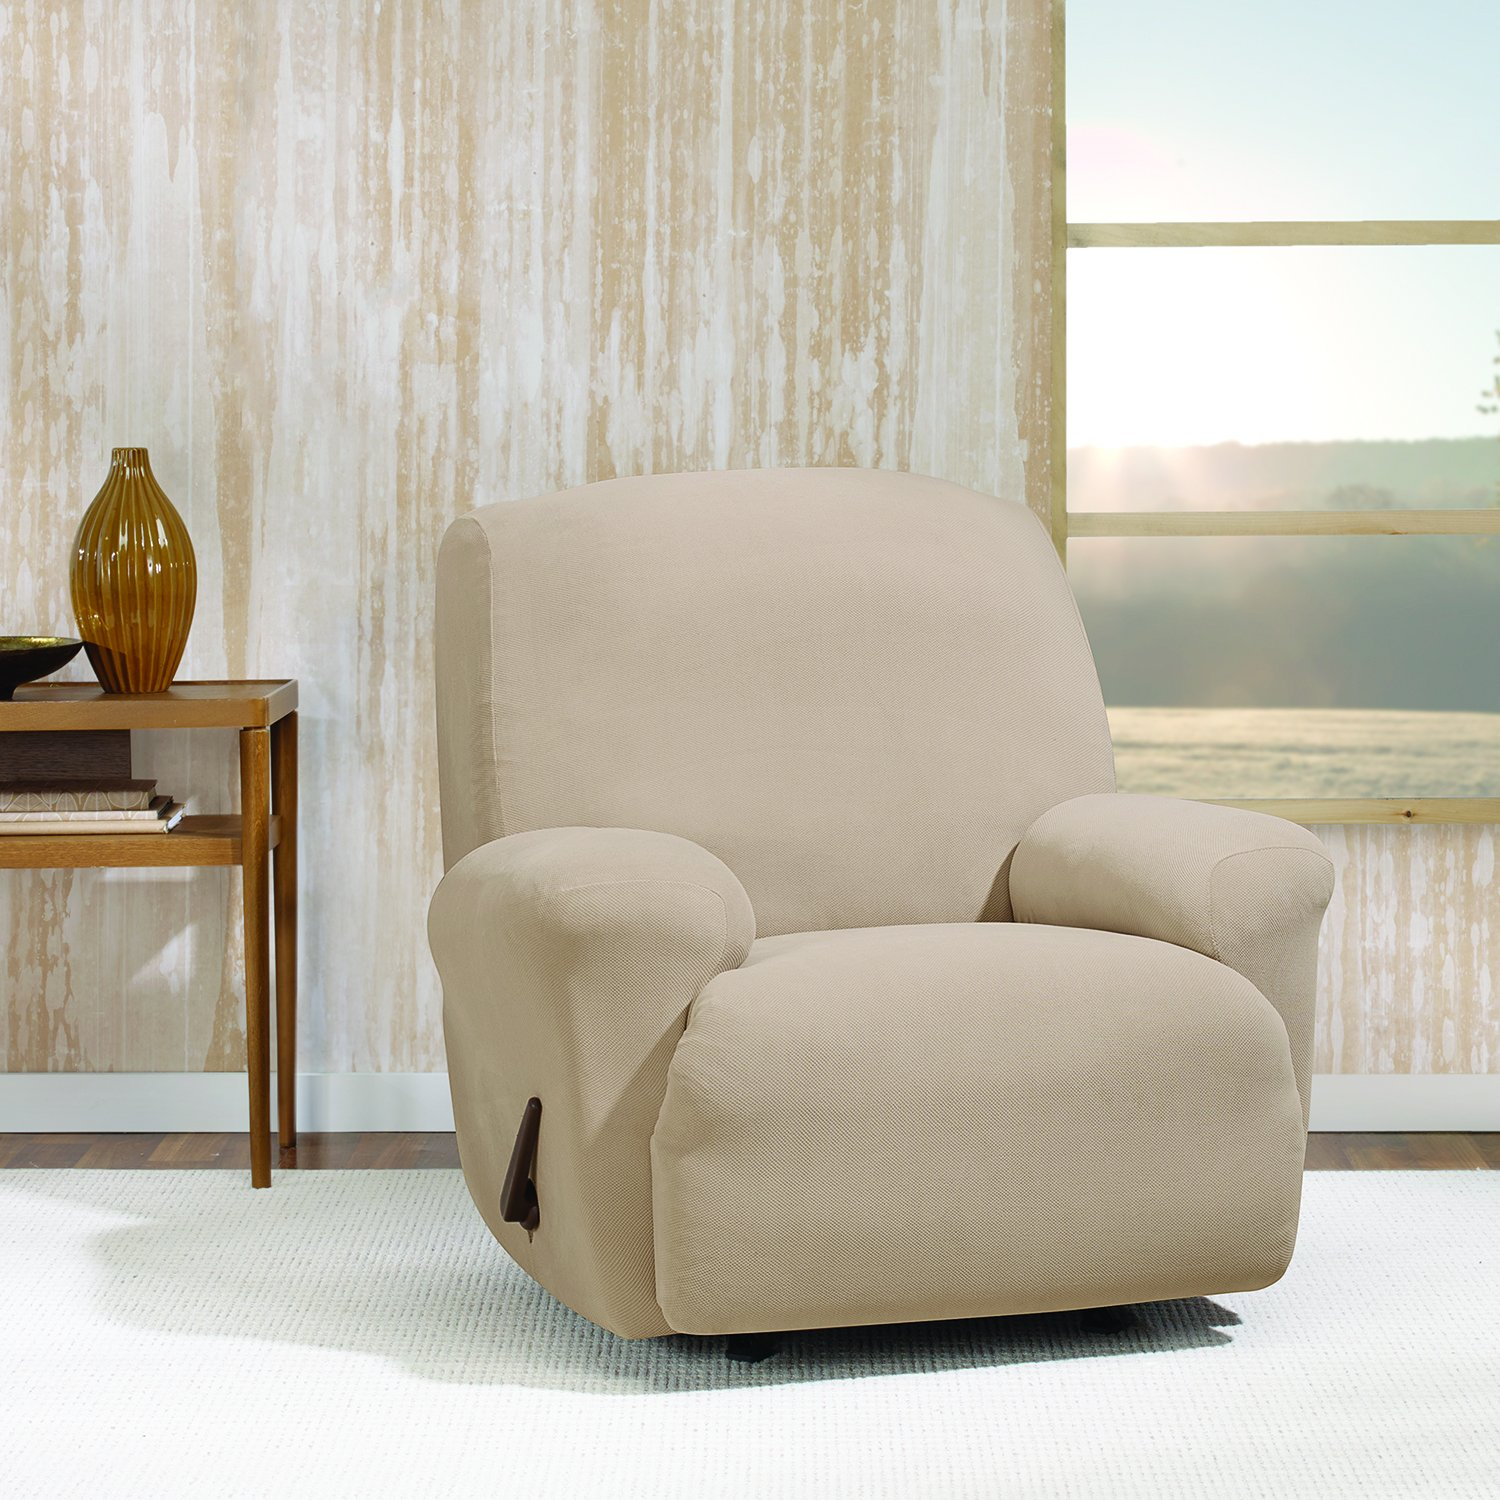 Sure Fit Stretch Morgan One Piece Recliner Furniture Cover Chocolate